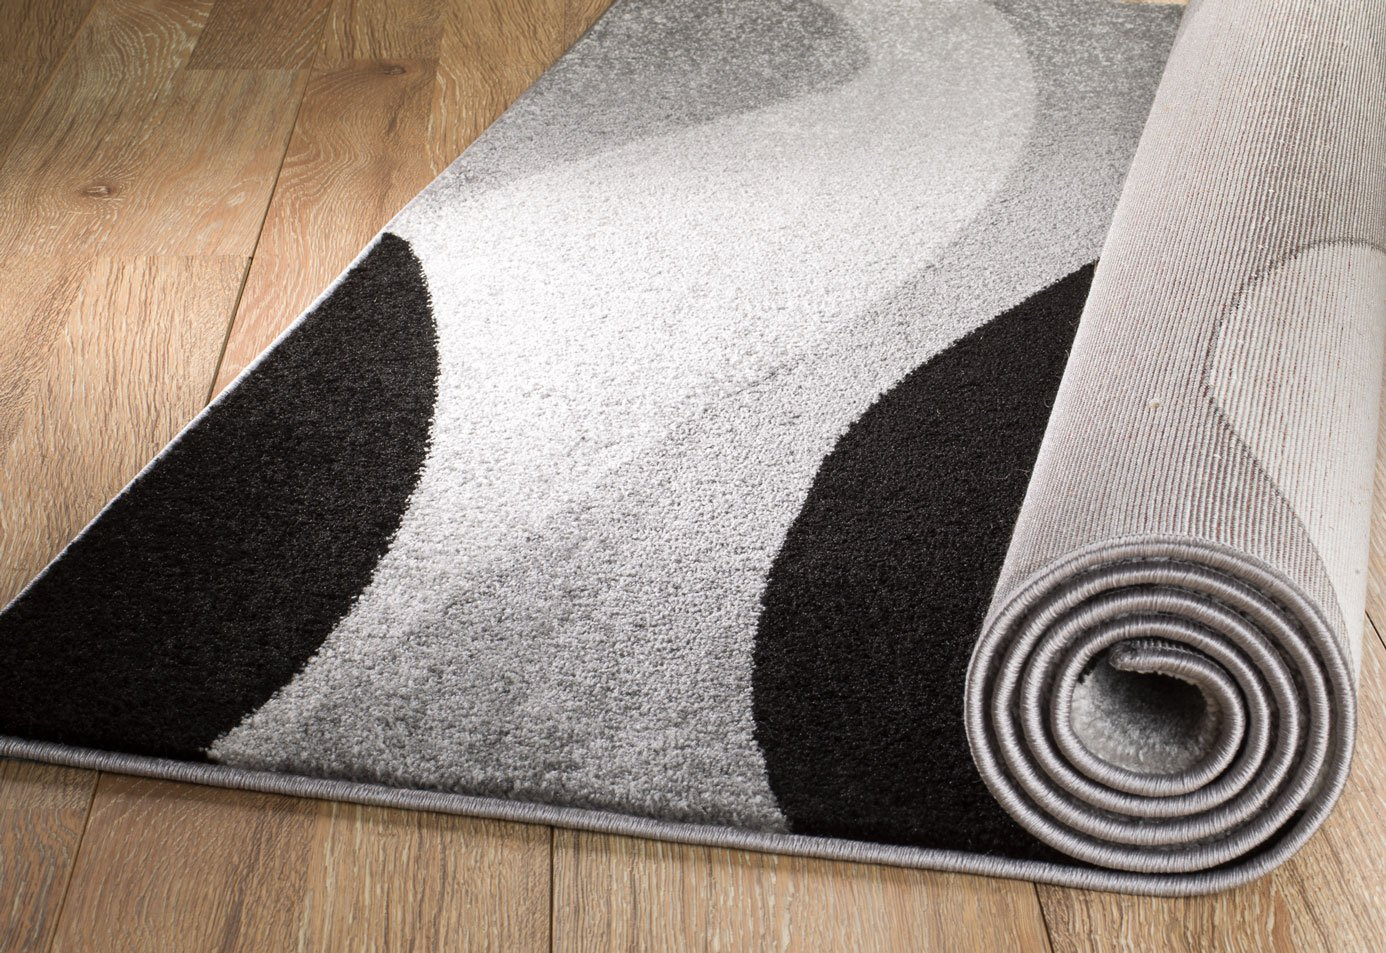 Rio Summit 307 Grey Black White Area Rug Modern Abstract Many Sizes Available 2 x 7 , 2 x 7 hallway runner